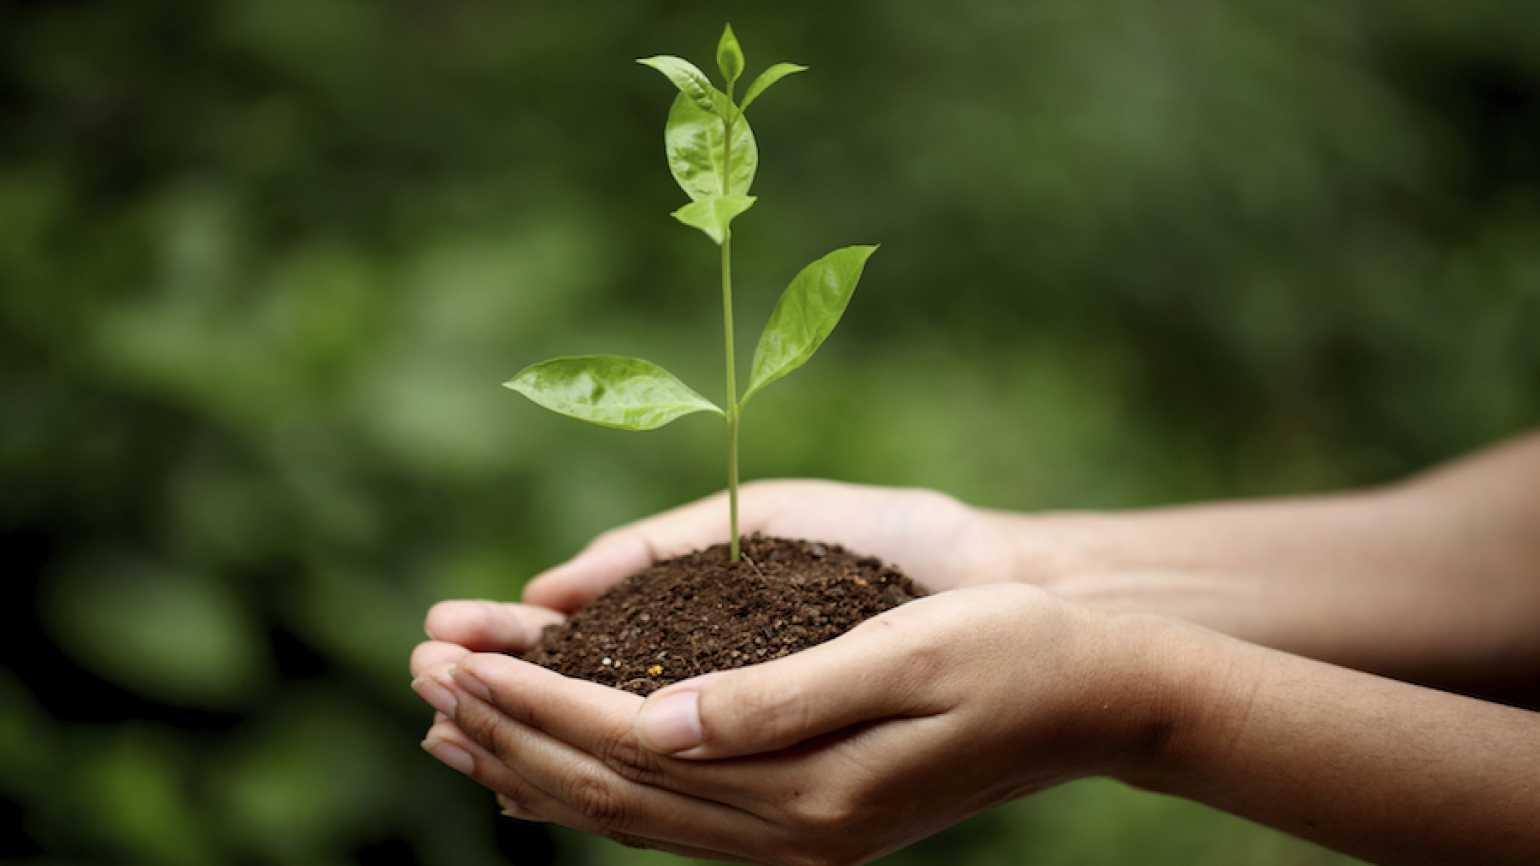 Hands holding a seedling. Thinkstock.